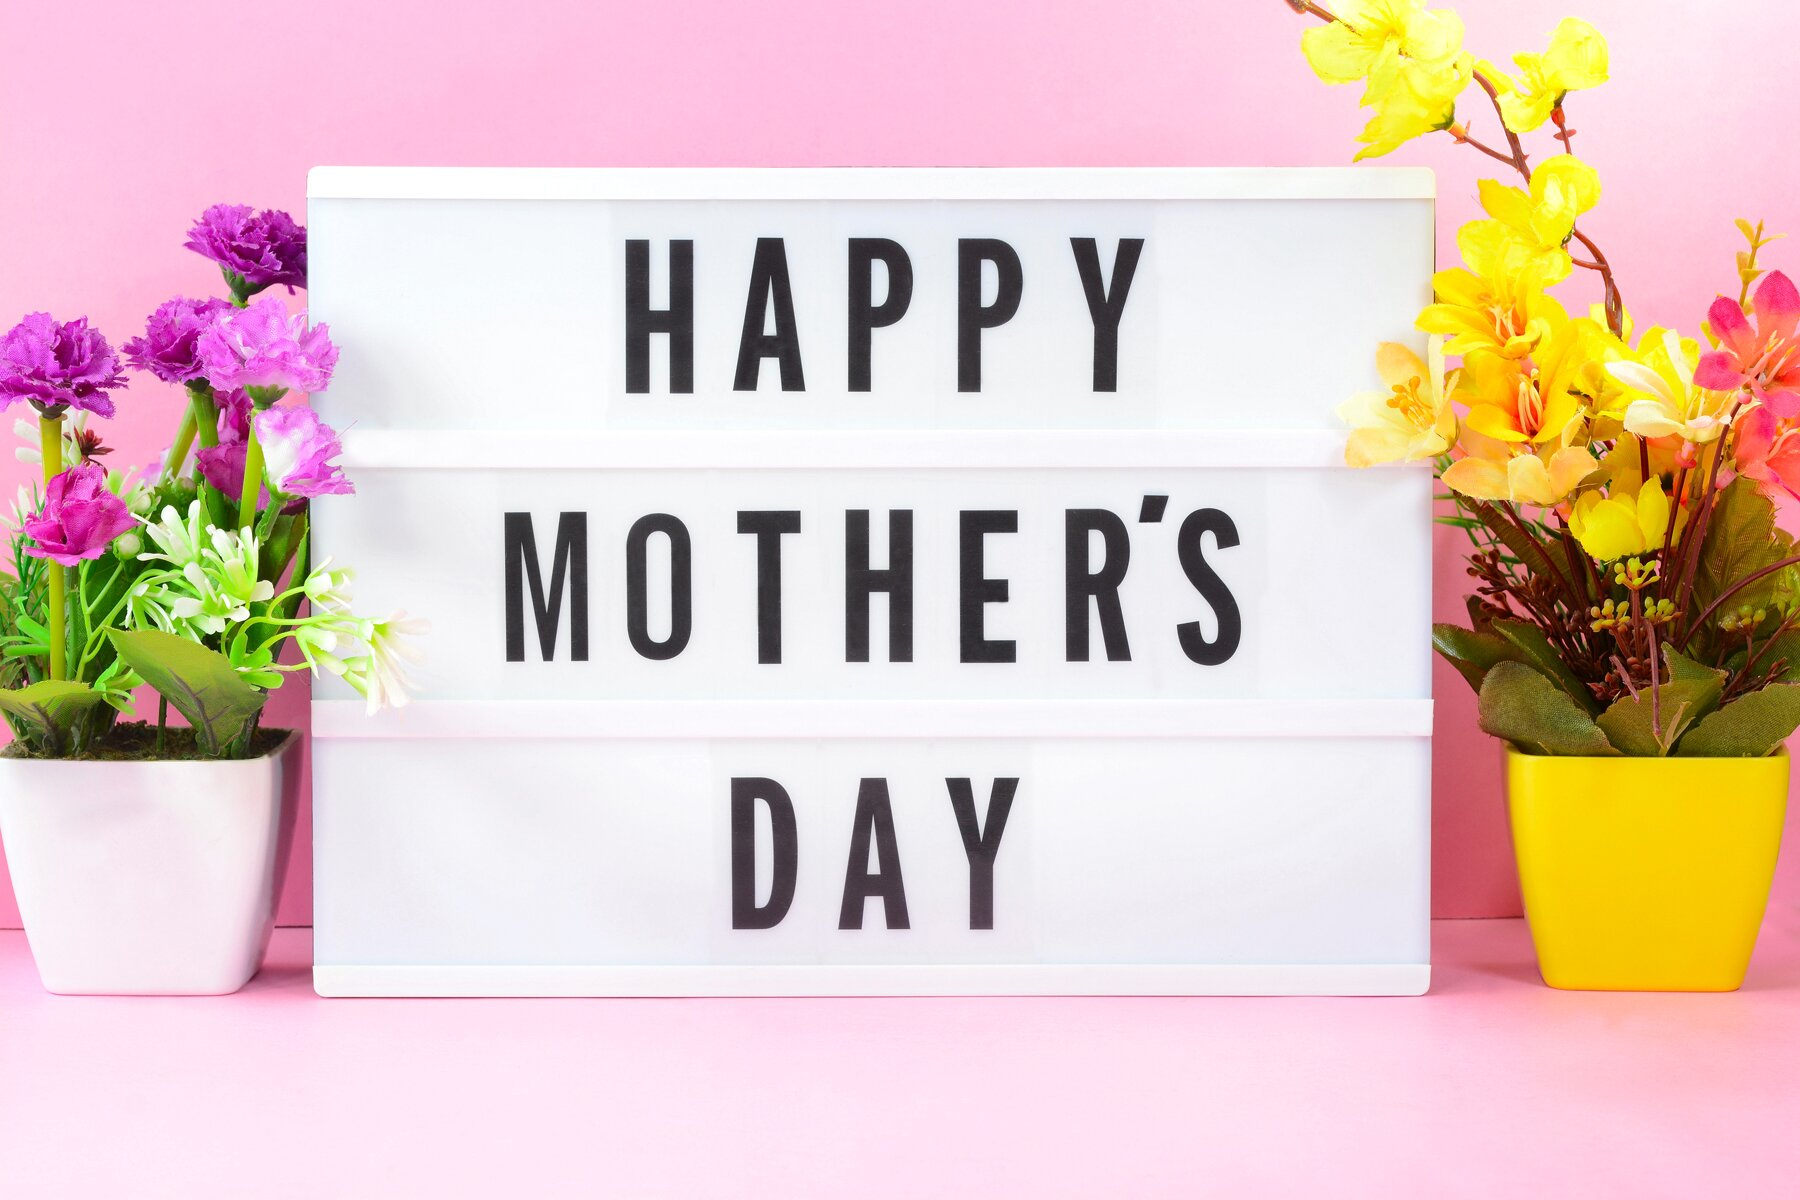 Mother's Day Poems That Will Make Mom Laugh and Cry | Real Simple